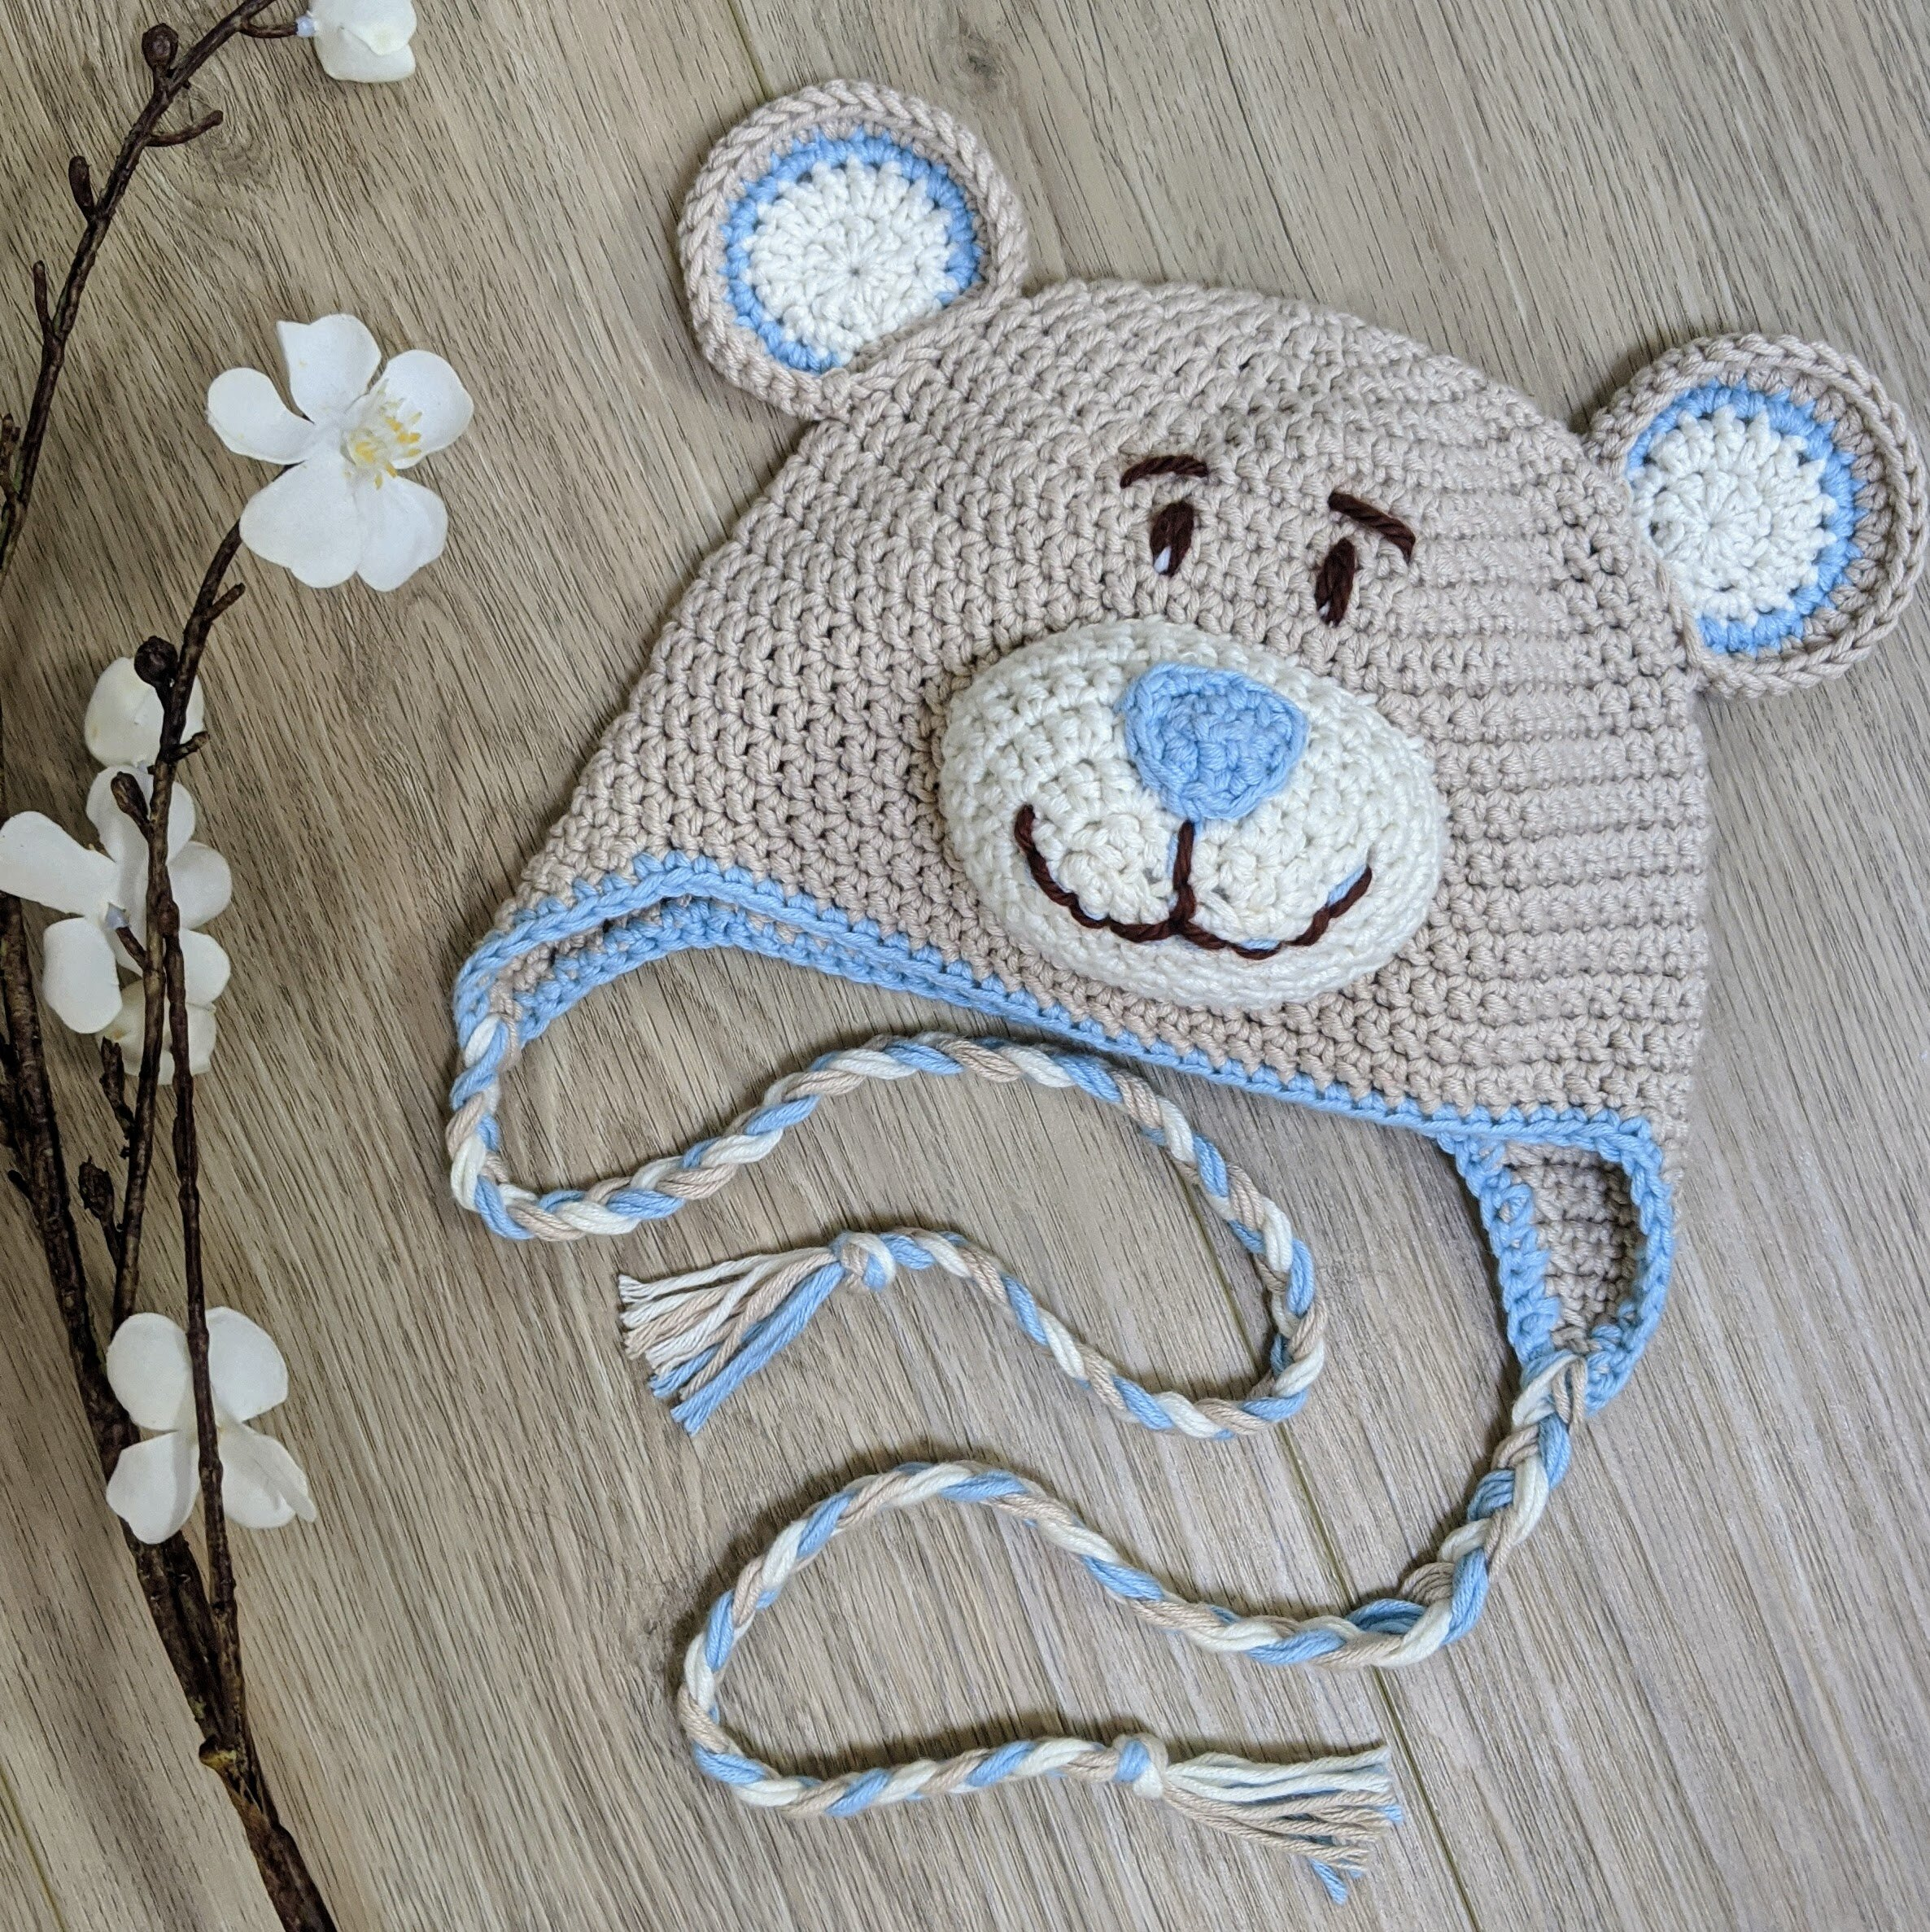 Crochet teddy bear hat | Crochet bear hat, Crochet teddy, Crochet ... | 1001x1000